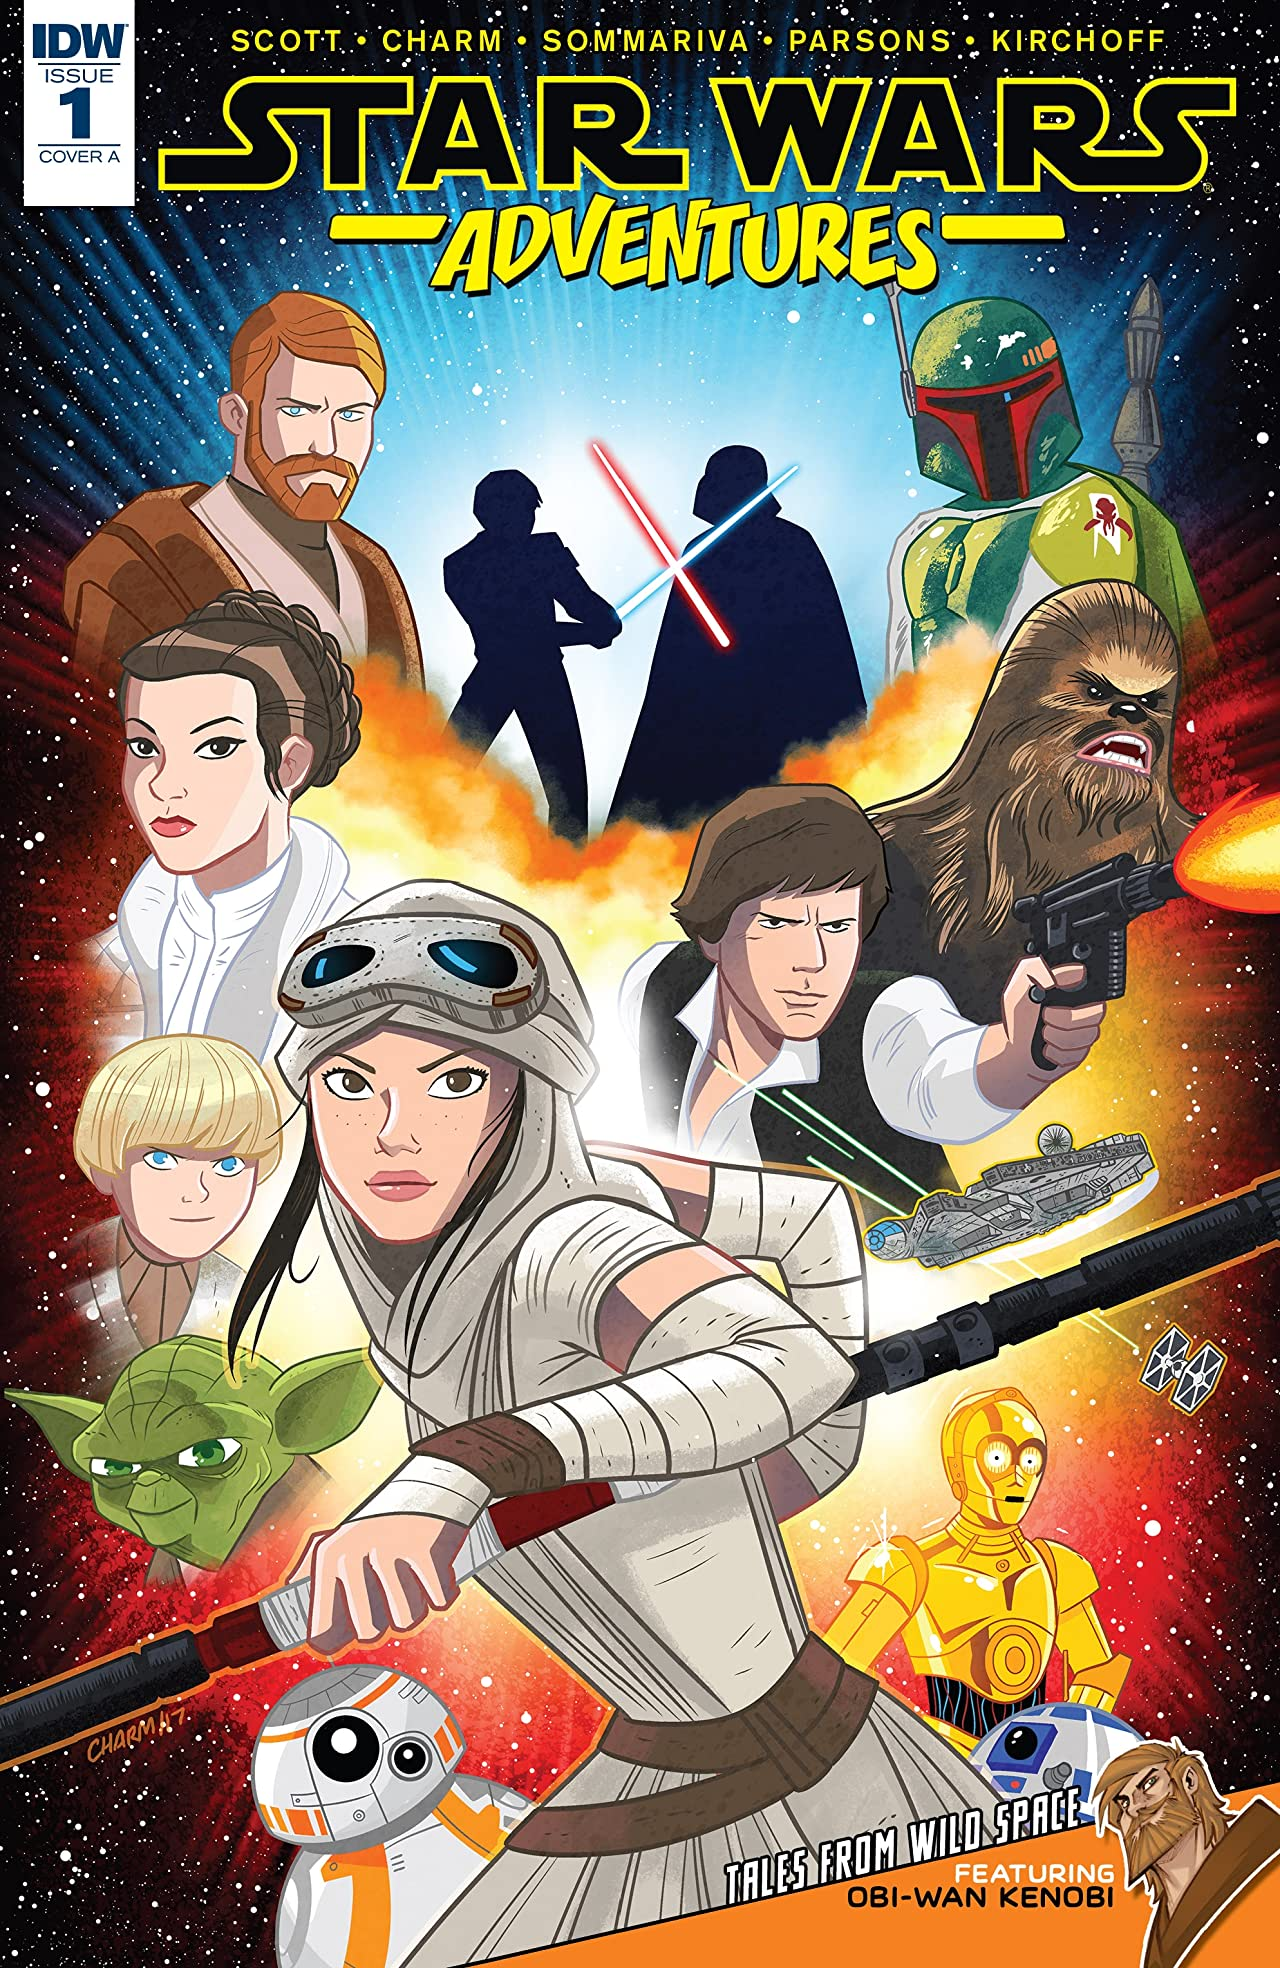 Star Wars Adventures #1